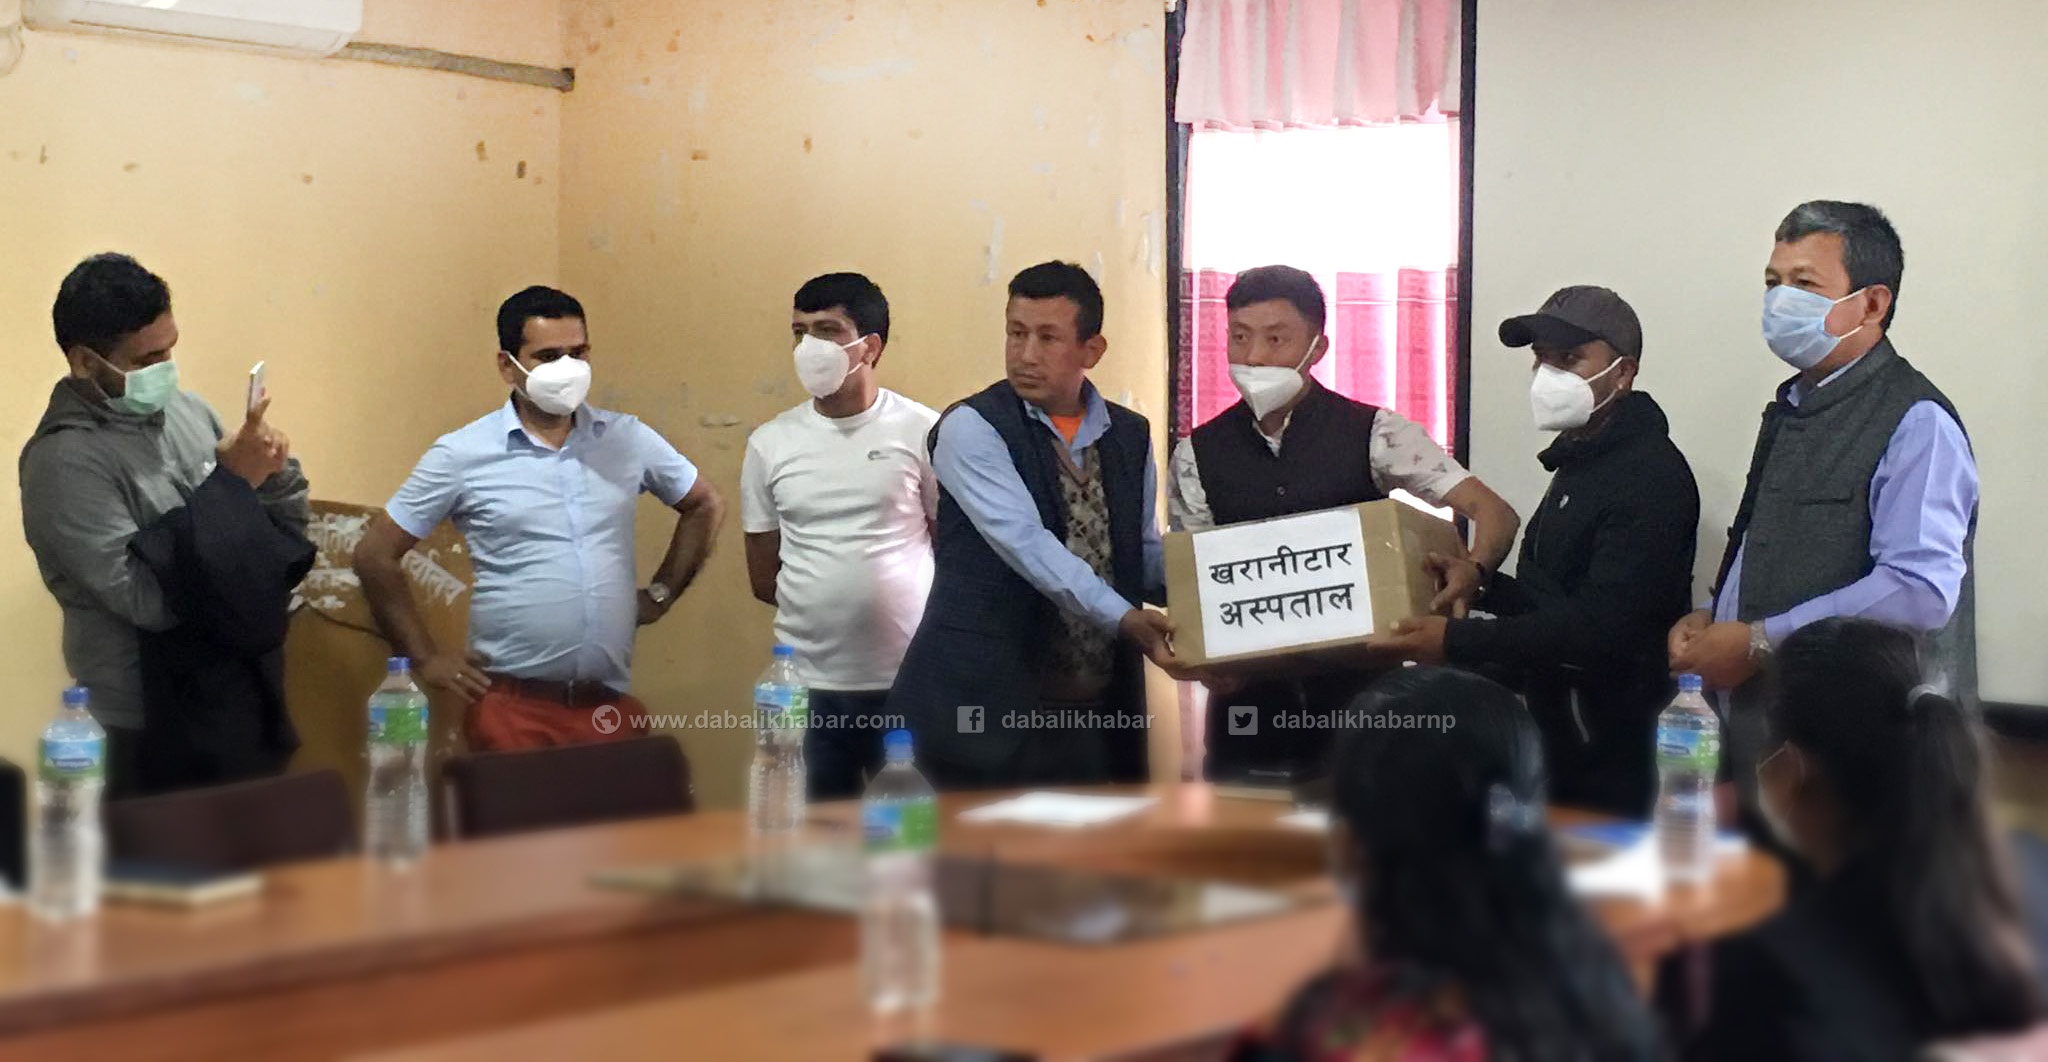 nuwakot samaj south korea donate coronavirus ppe sets to nuwakot health post